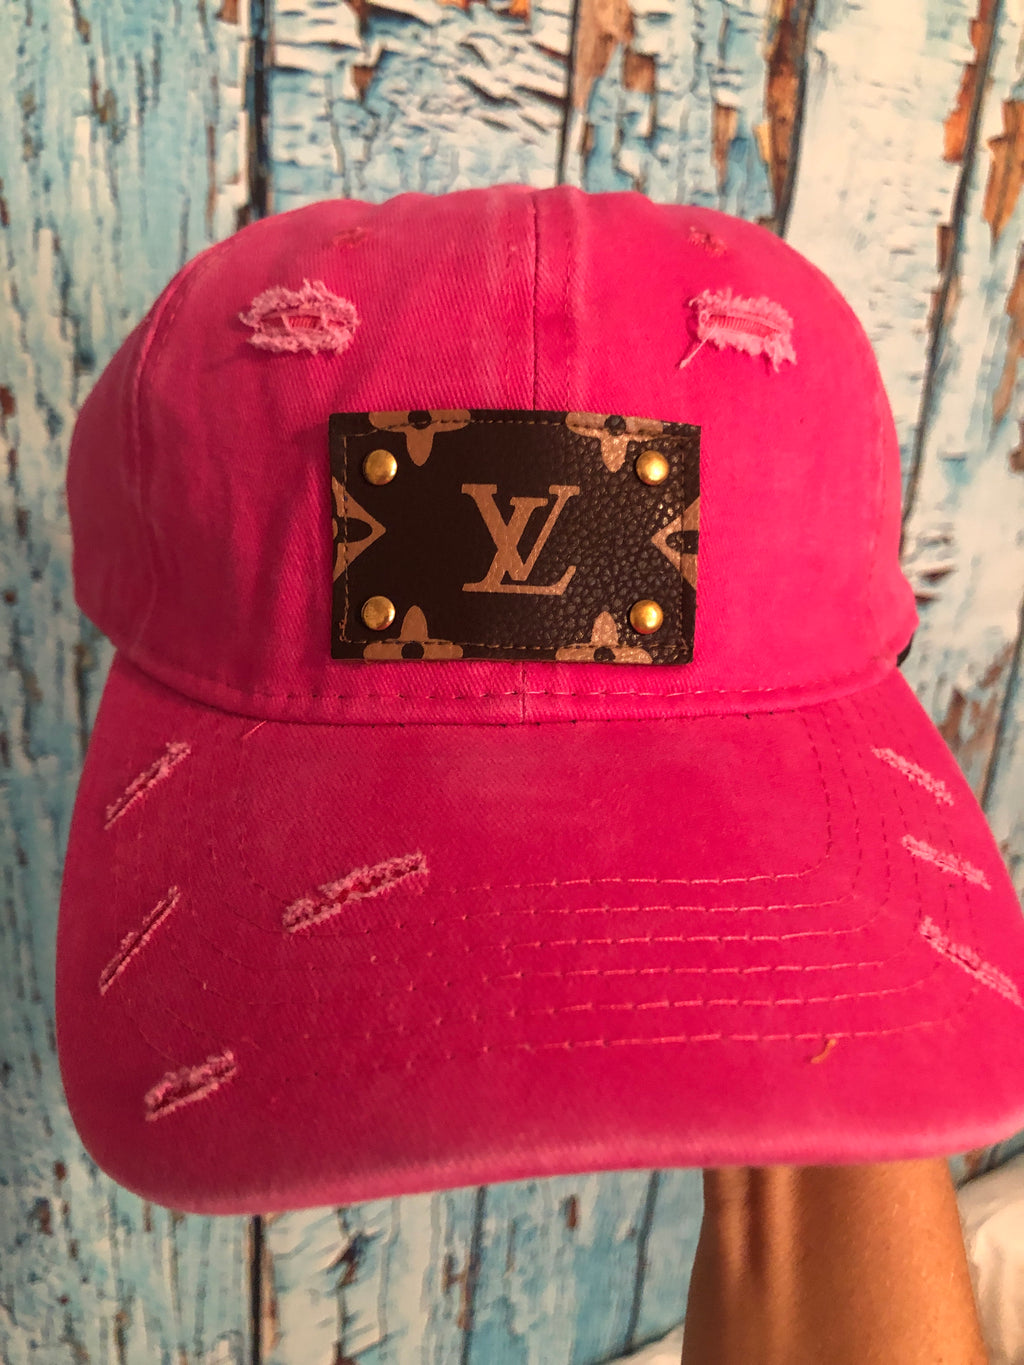 UPCYCLED LV PATCH CAPS - HOT PINK